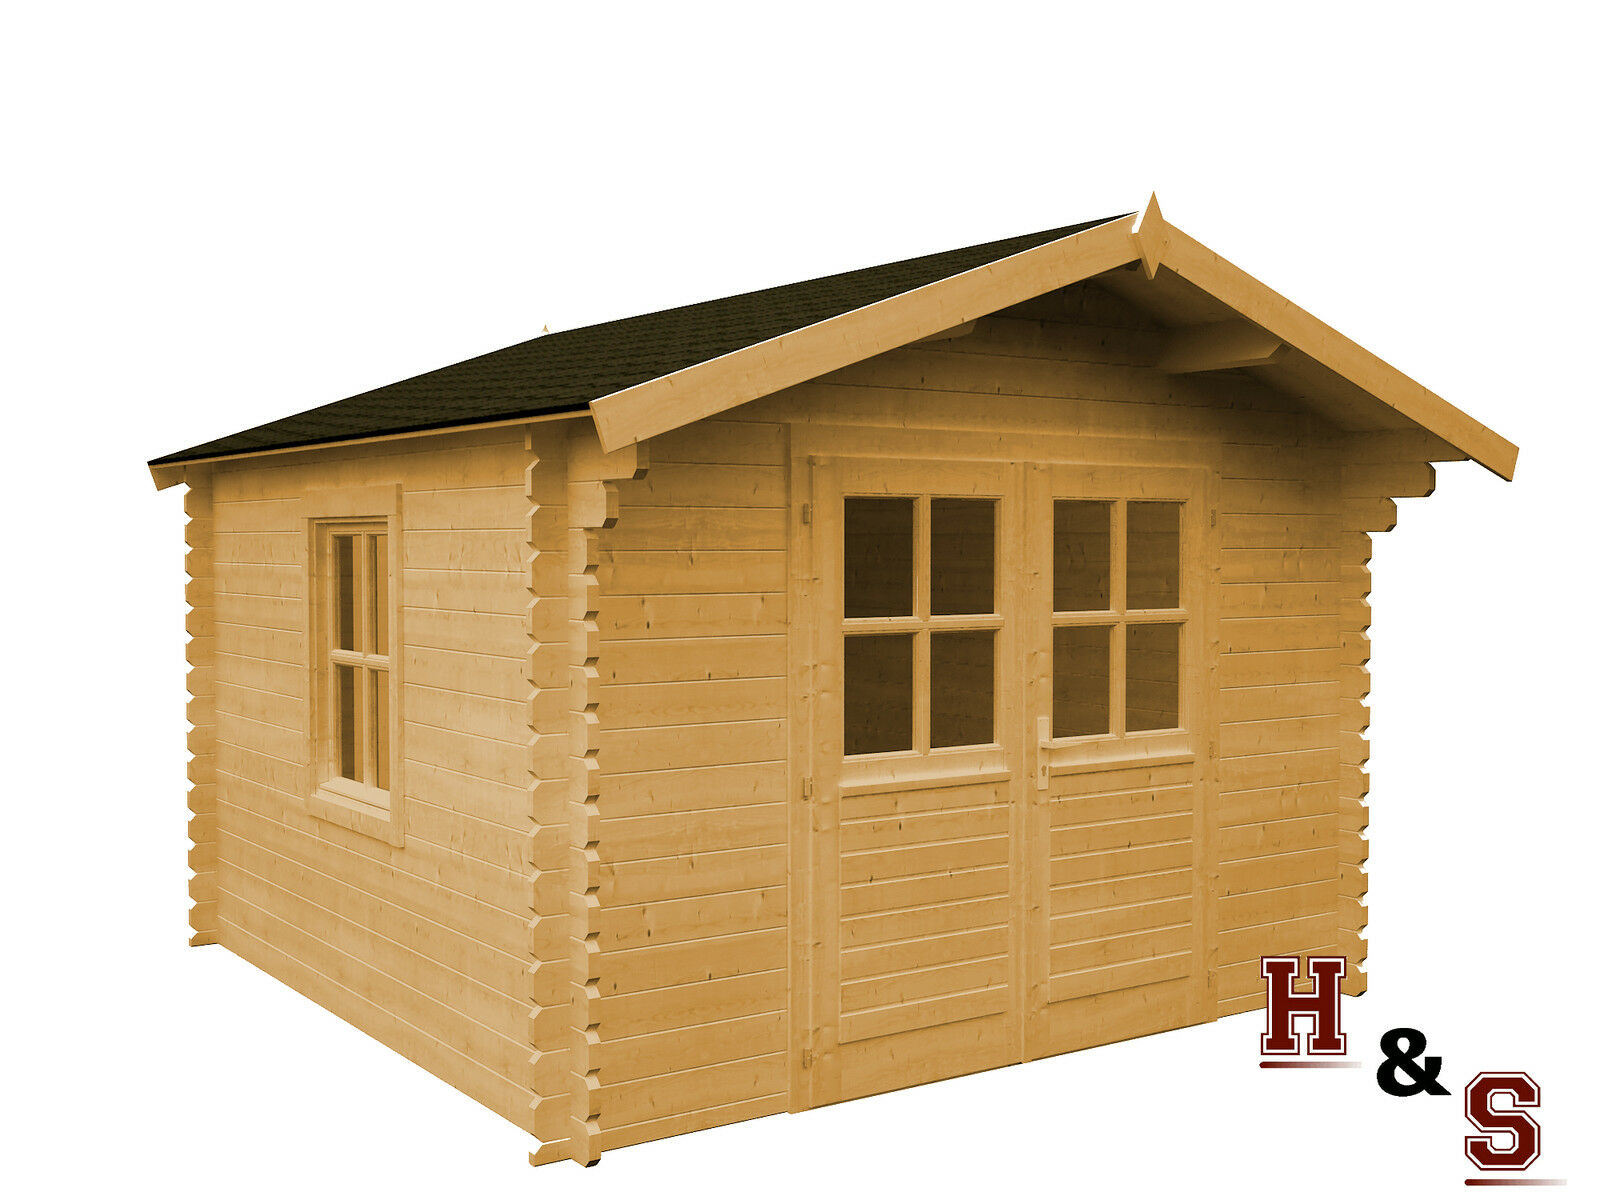 gartenhaus schleppdach 320x320 cm holz schuppen. Black Bedroom Furniture Sets. Home Design Ideas